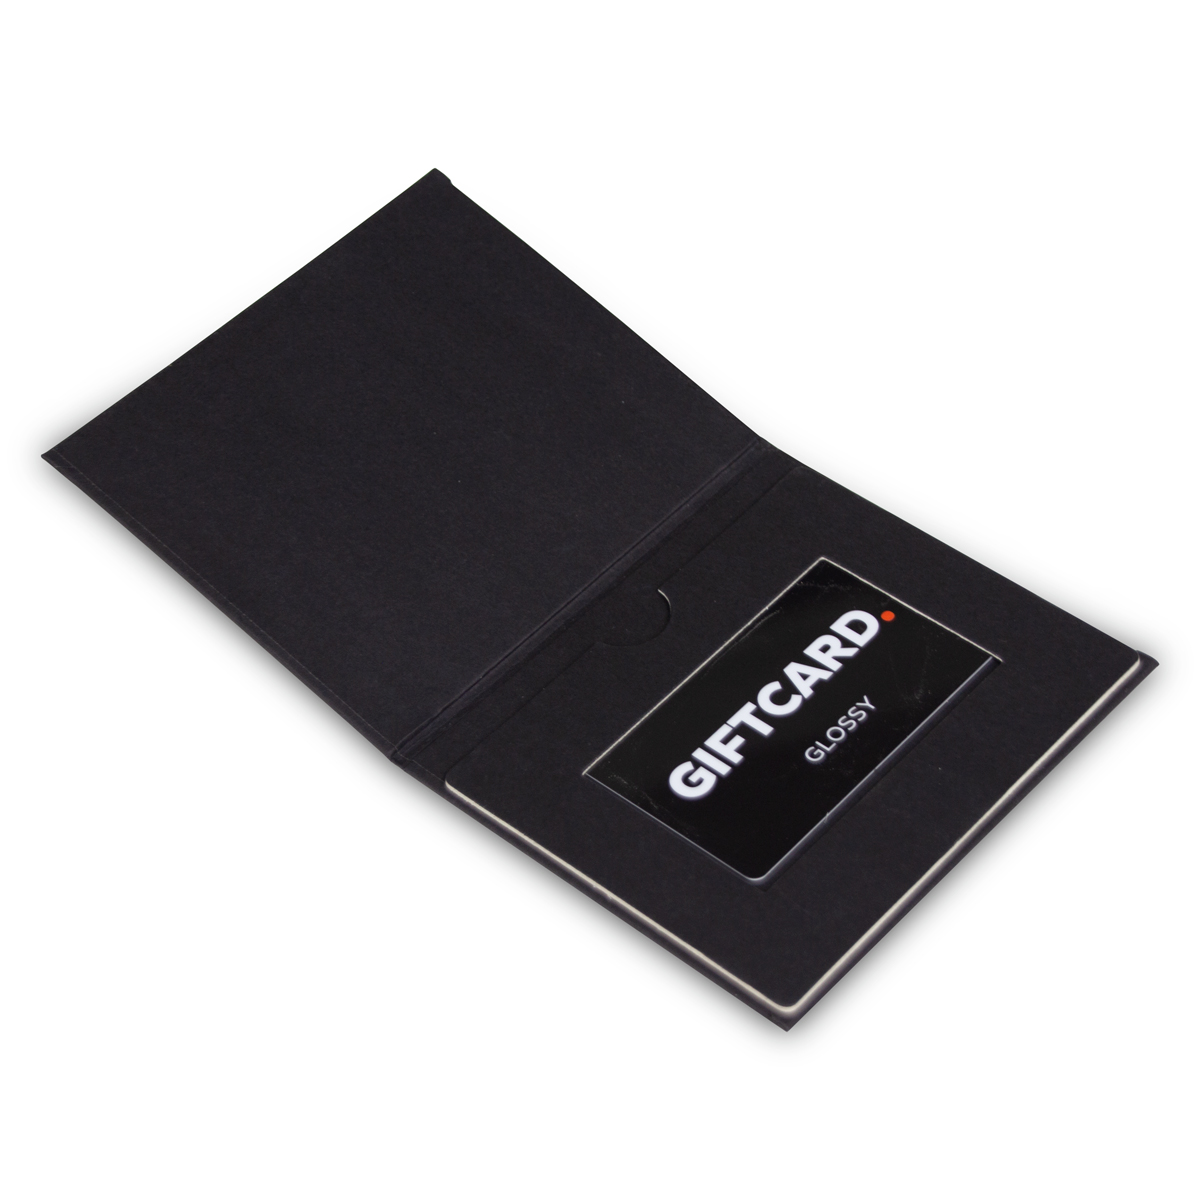 giftcard-product_(2)